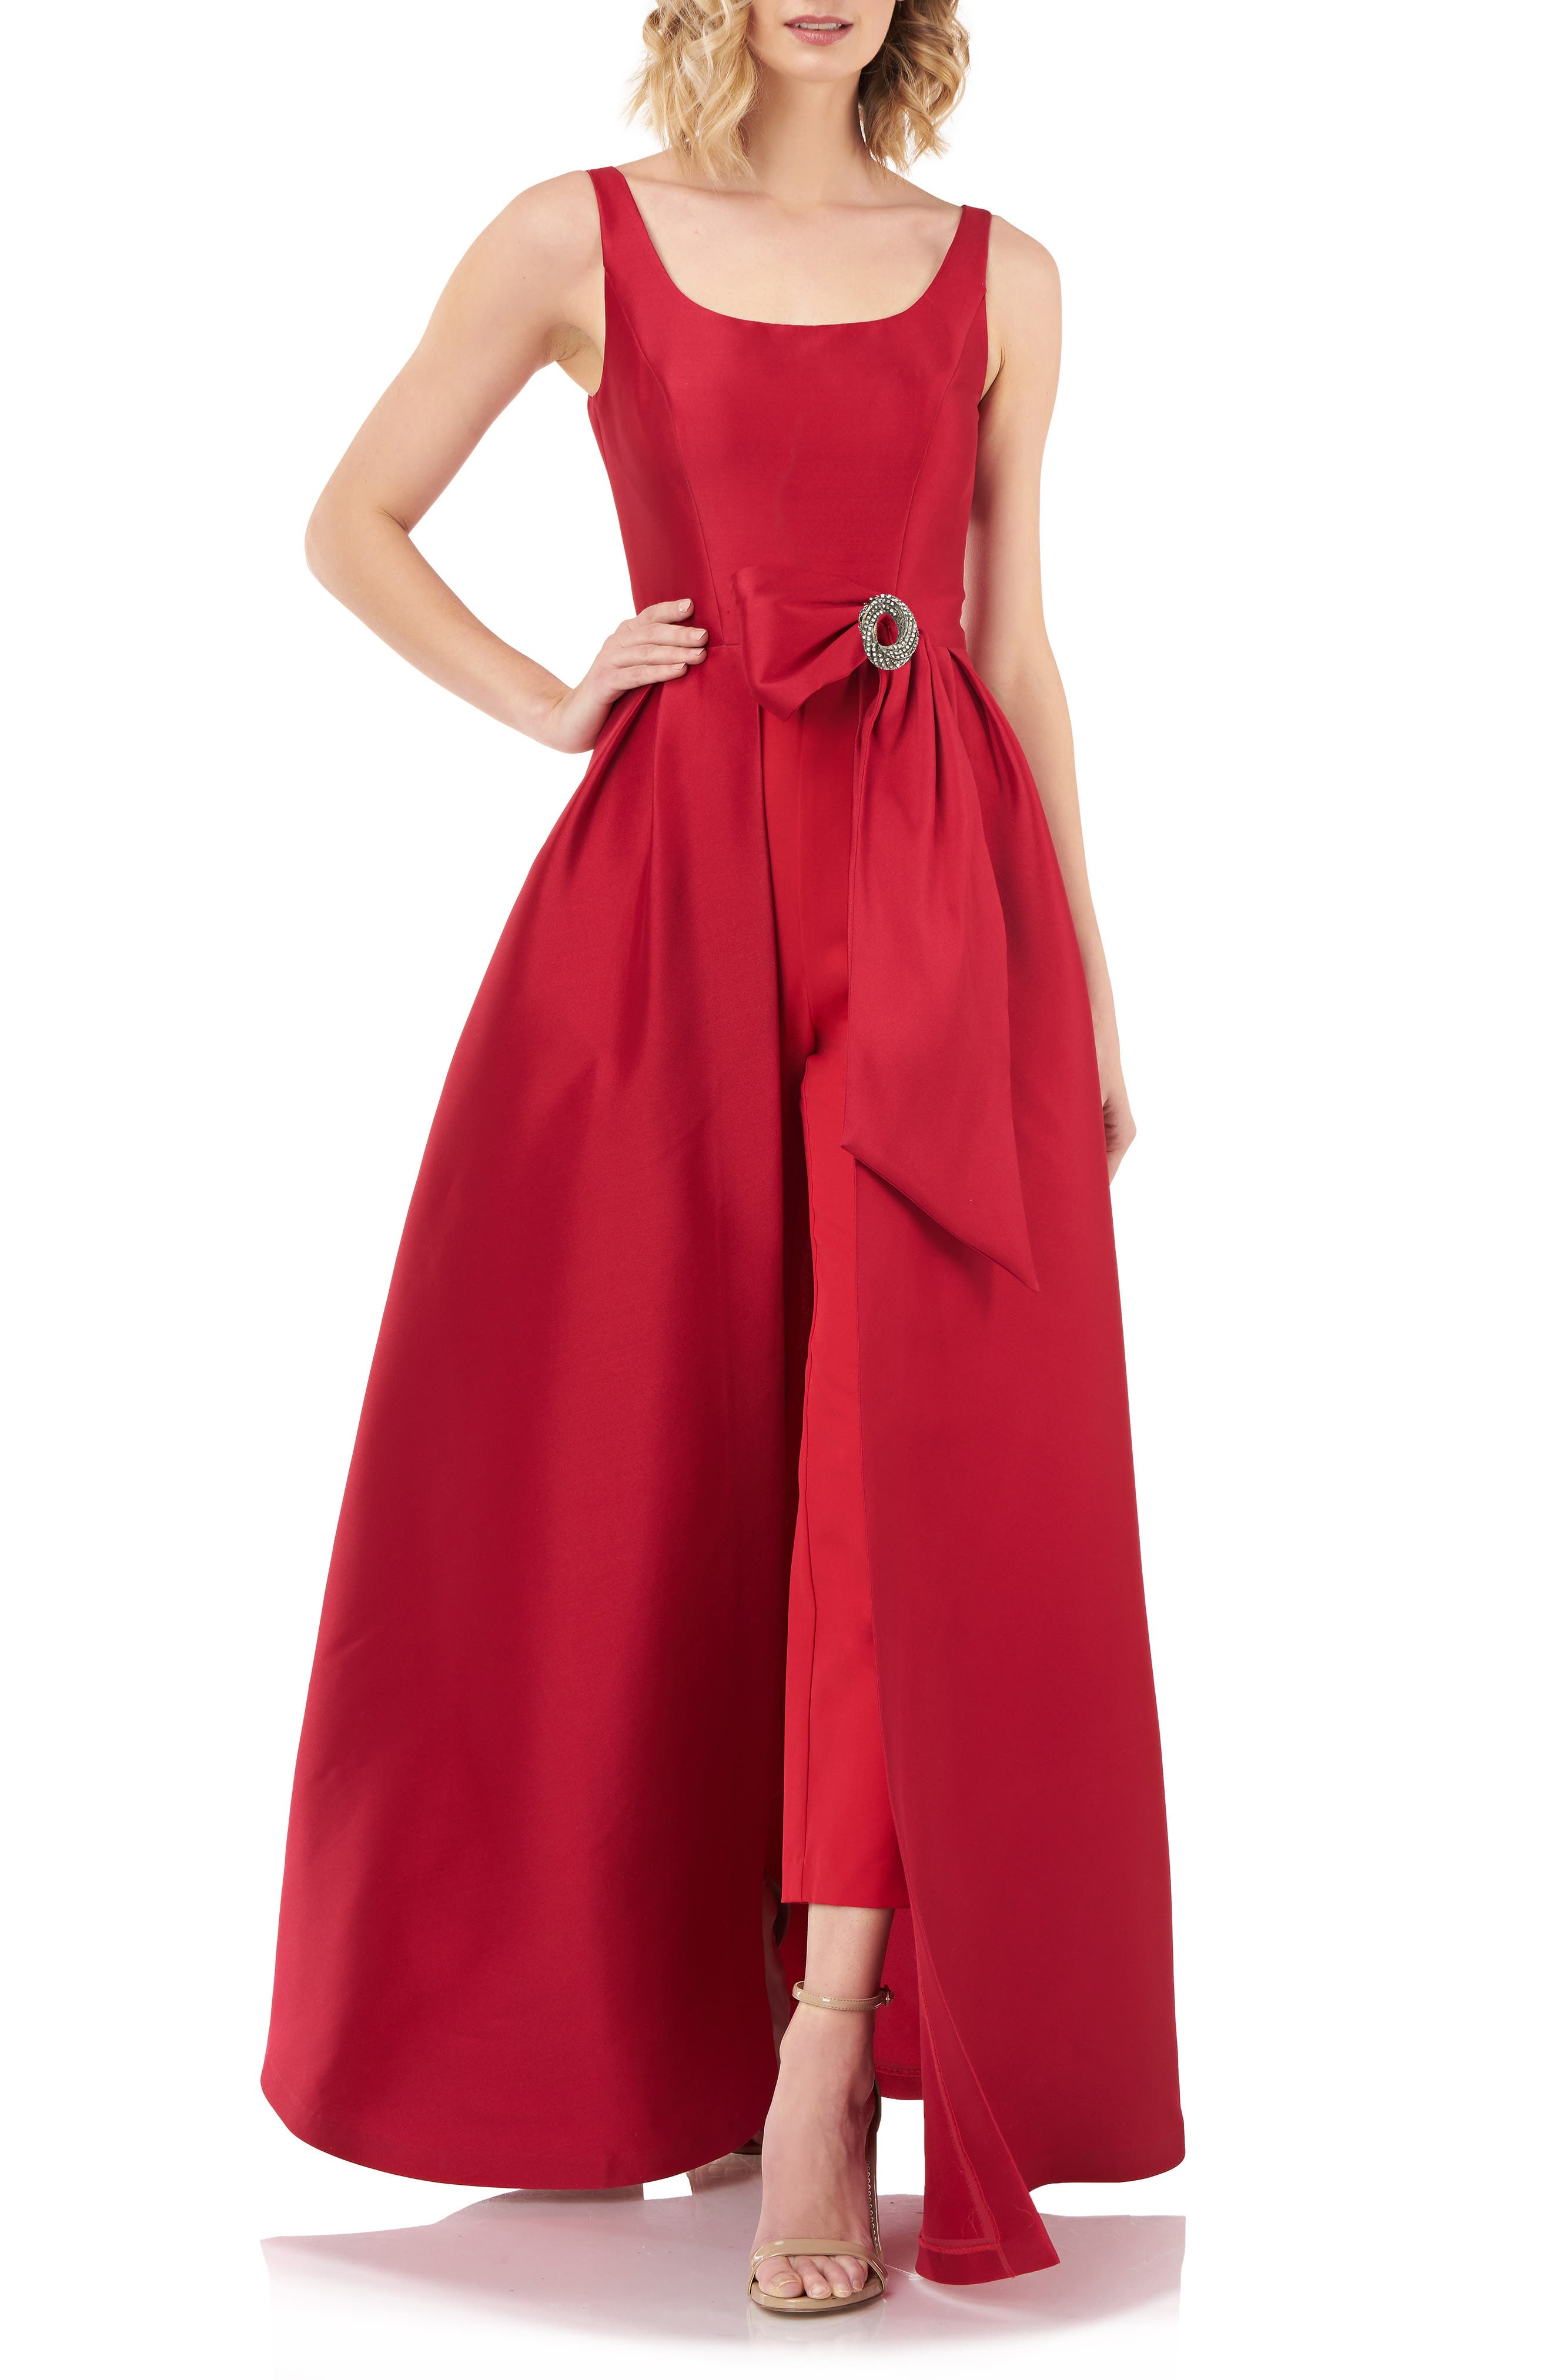 1950s Hostess Gown Pant Set- I Love Lucy Dress Womens Kay Unger Sophie Romper Gown Size 6 - Red $298.00 AT vintagedancer.com